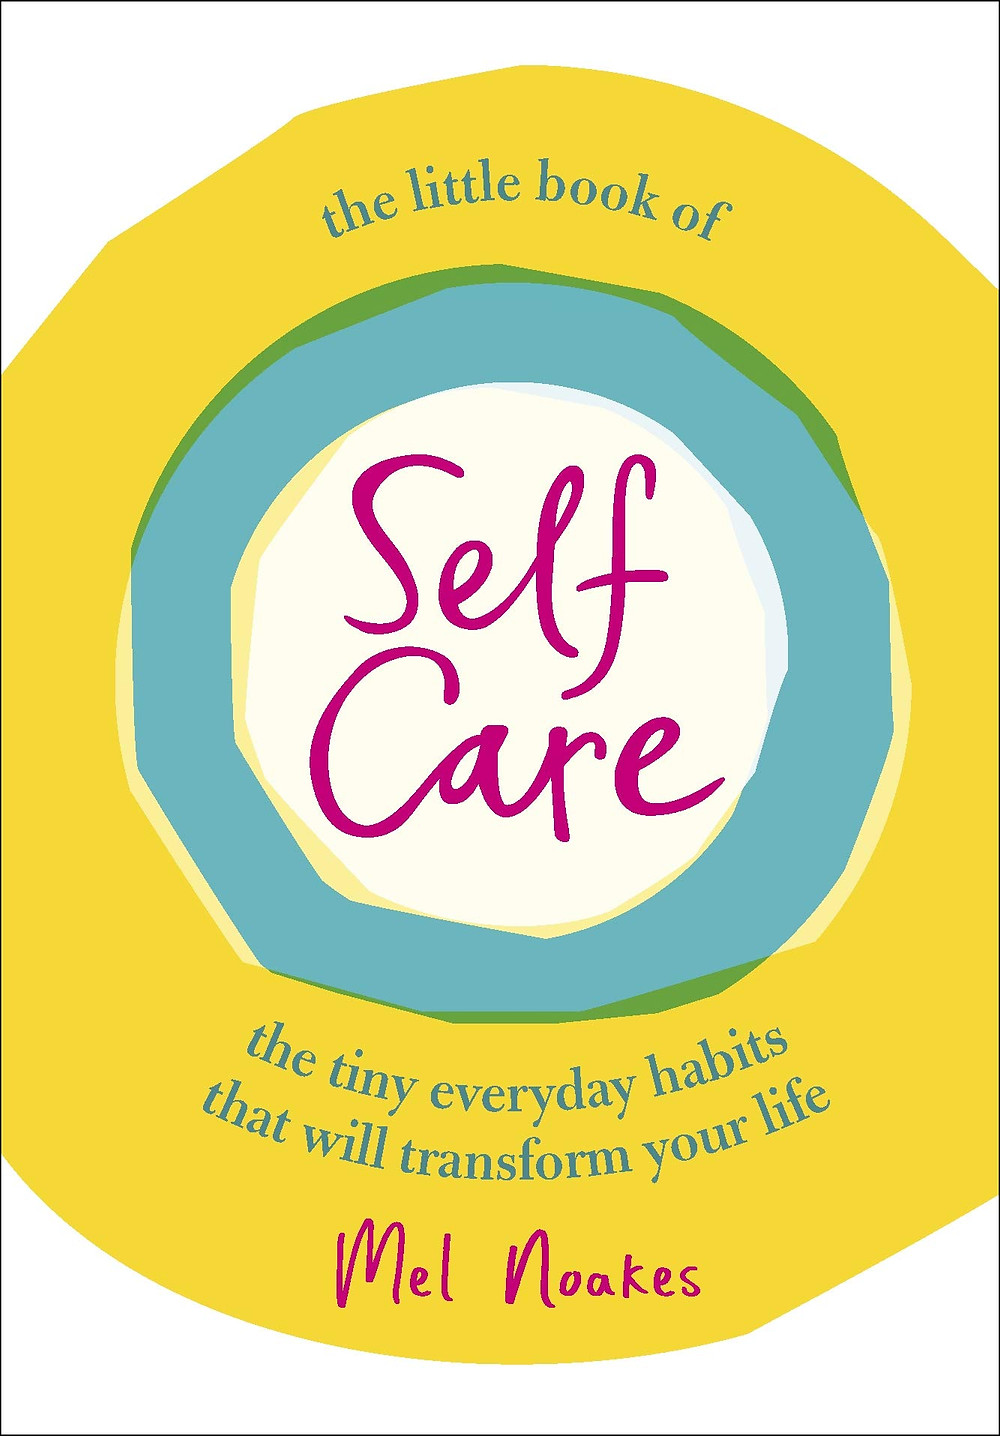 The Little Book of Self Care by Mel Noakes image via Amazon website